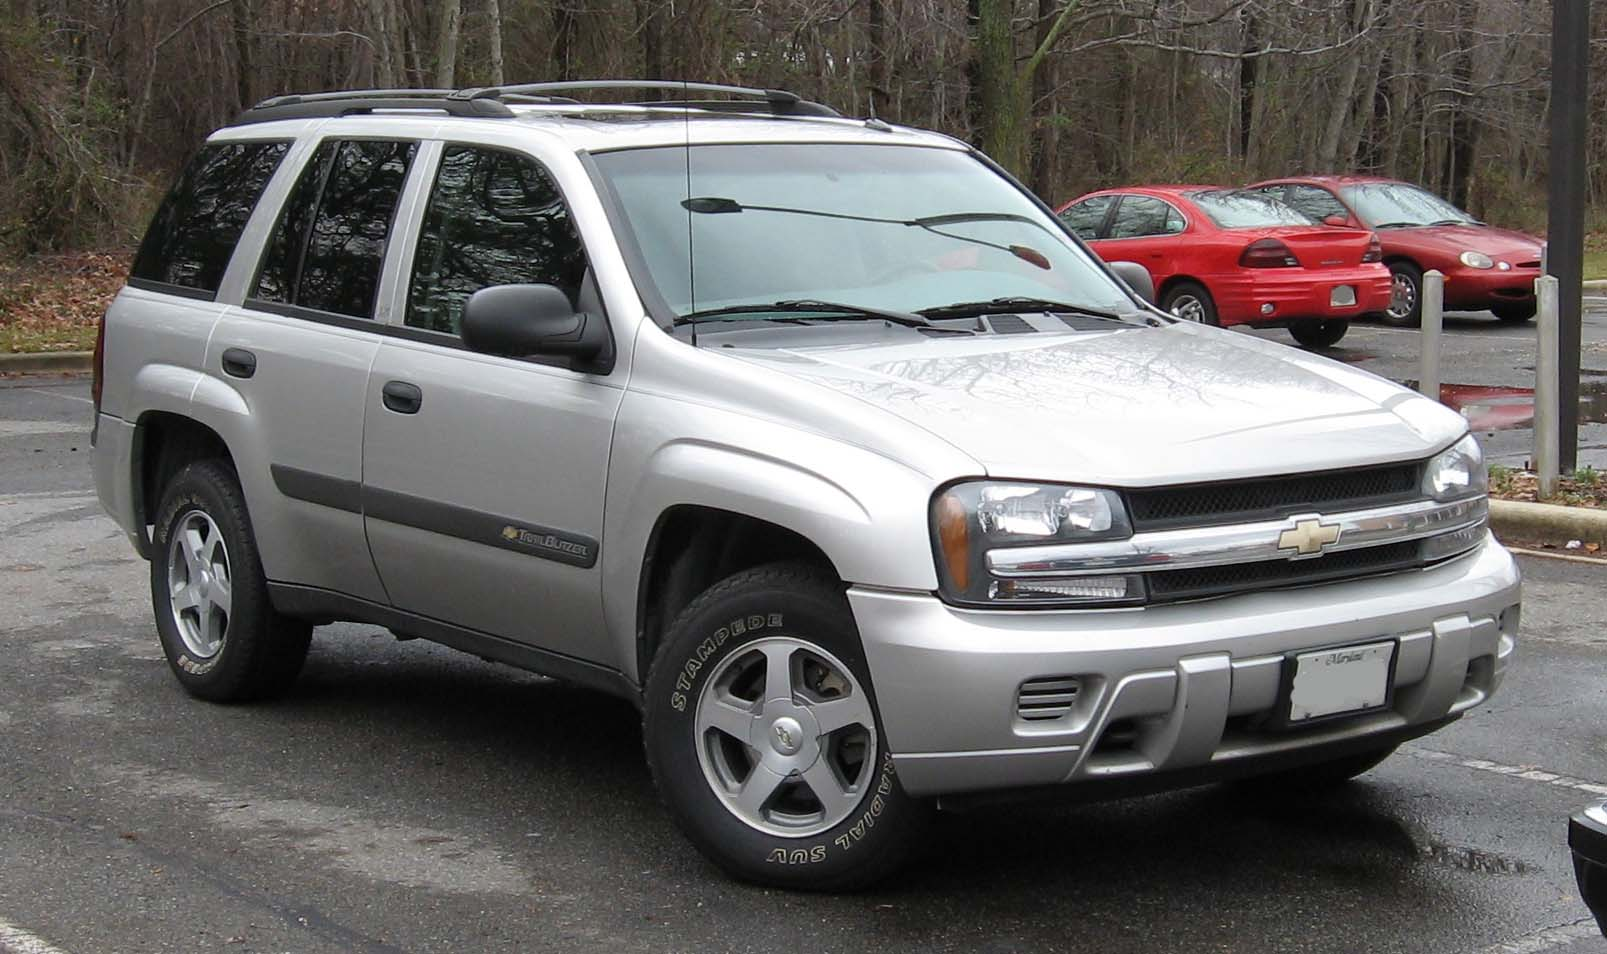 chevrolet trailblazer car photos, chevrolet trailblazer car videos ...